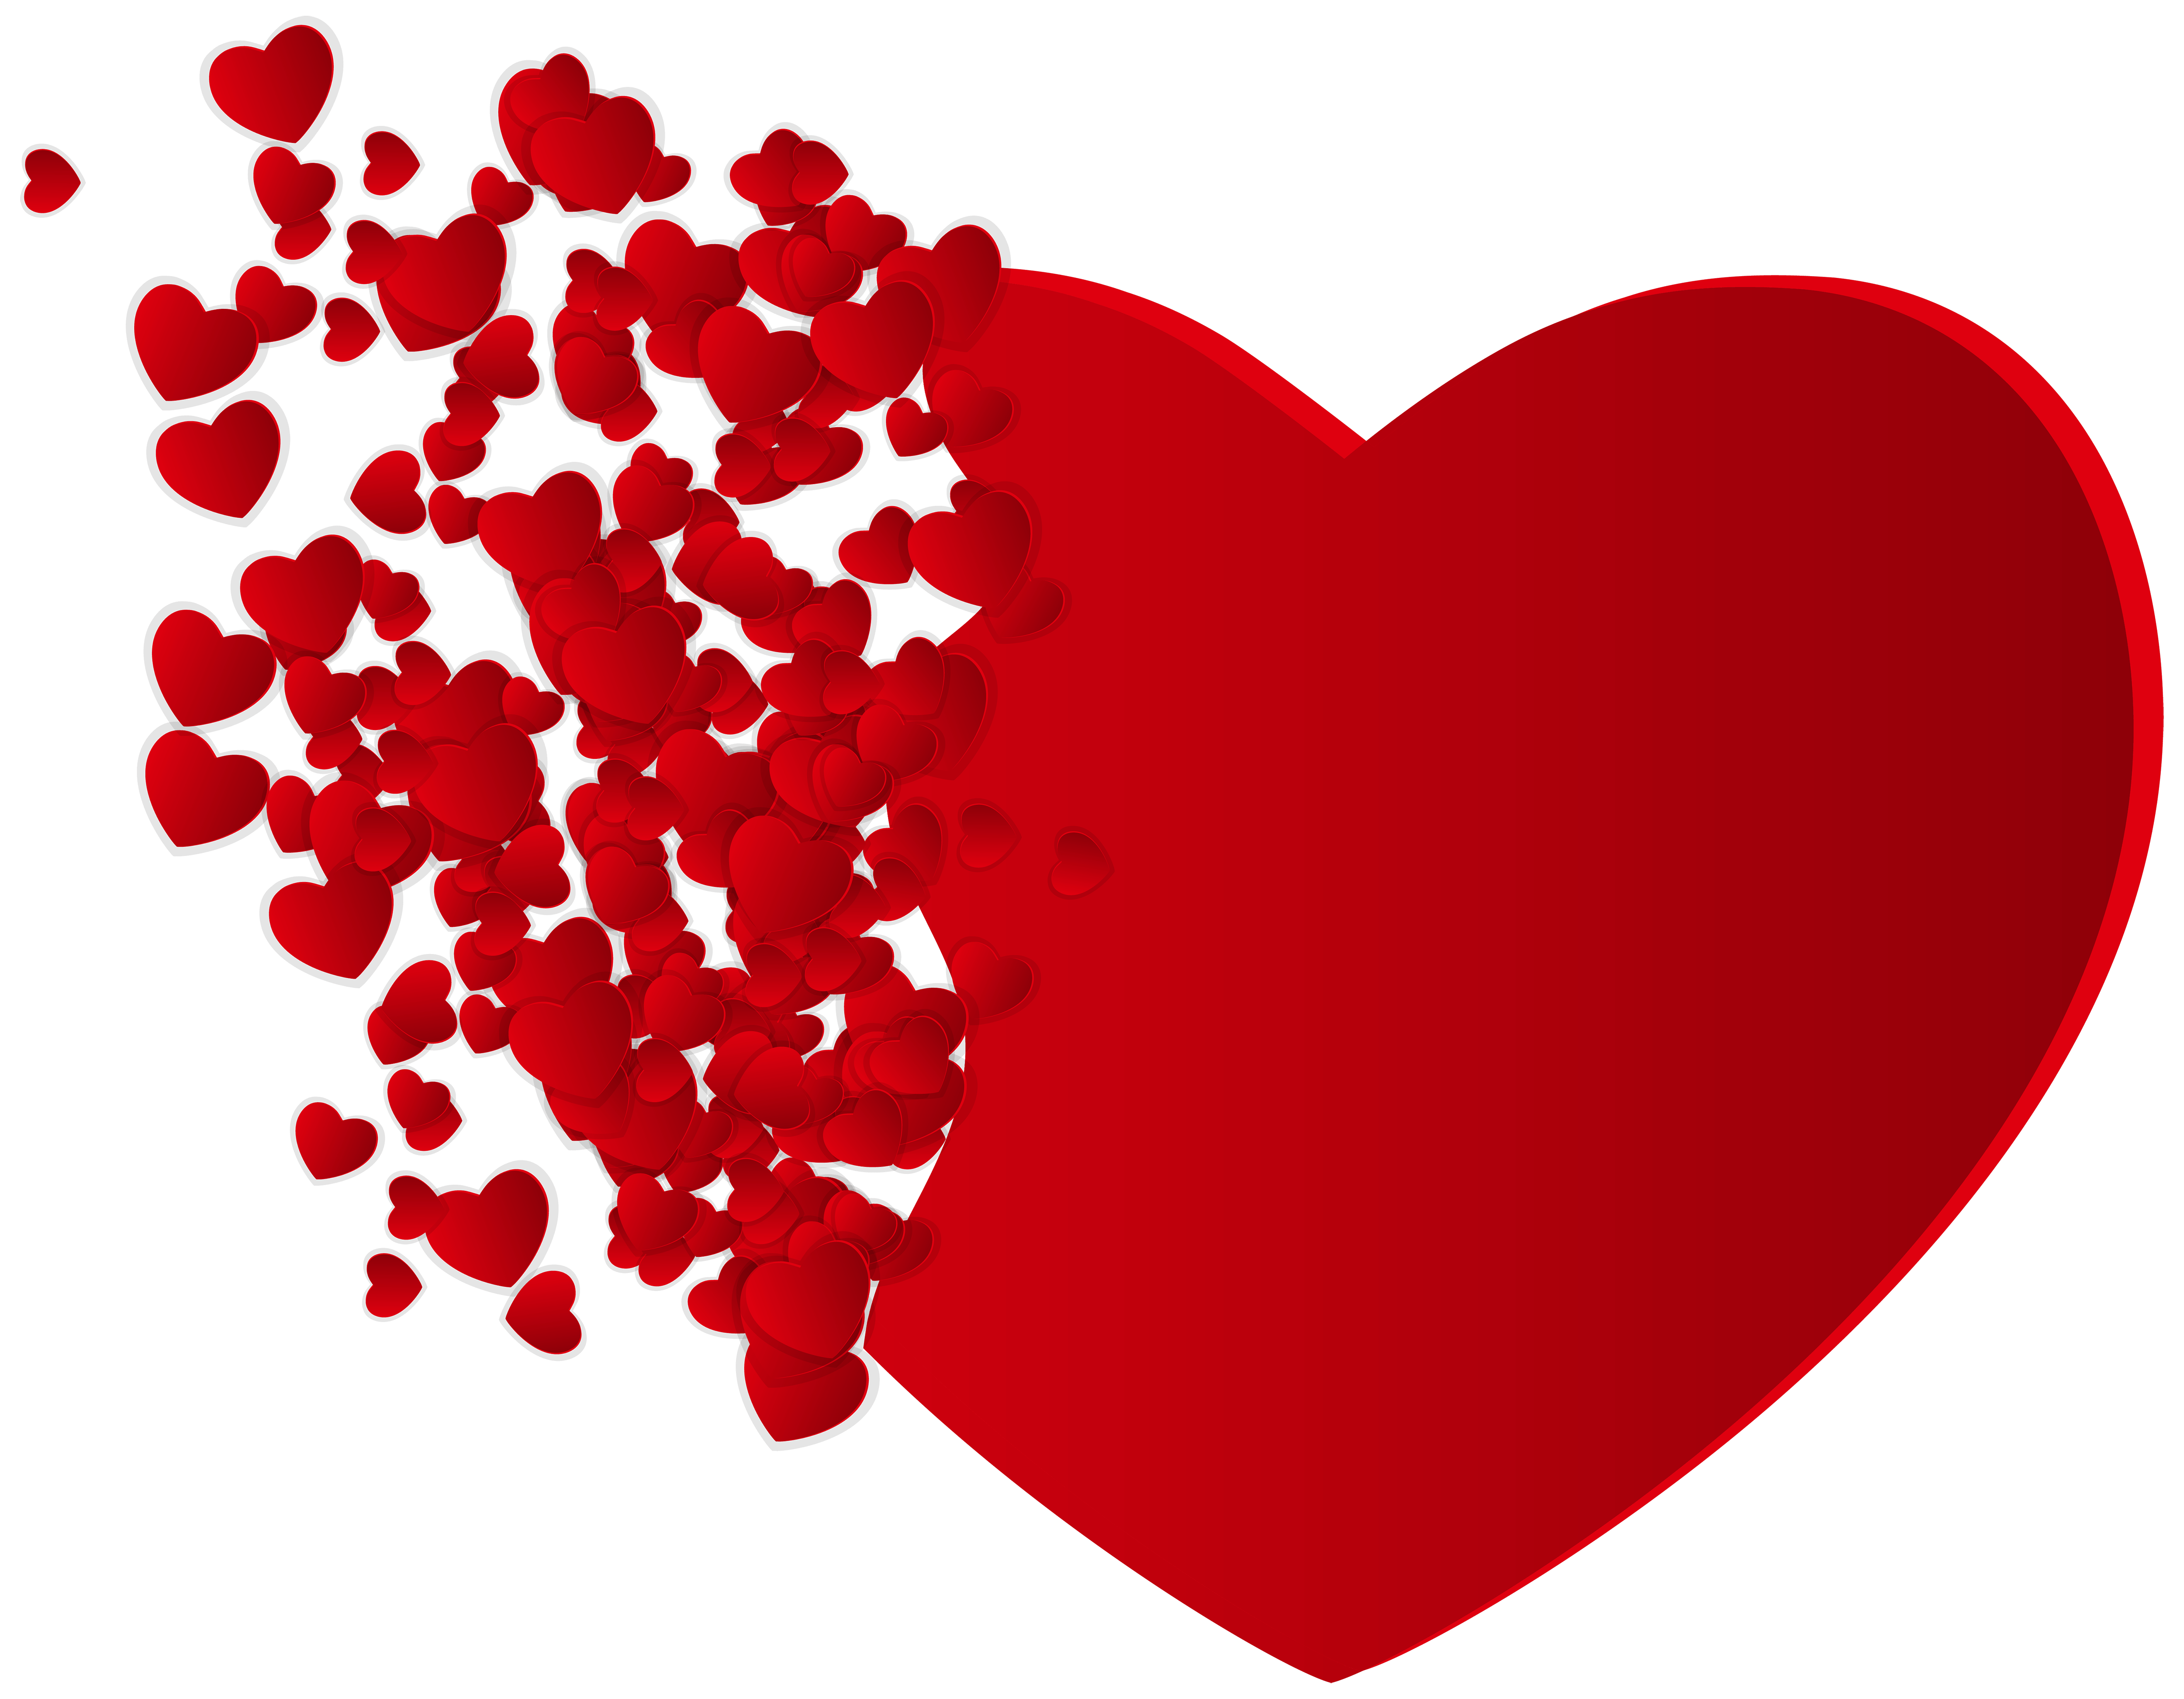 Hearts Png Hearts Png Hd Transparent Hearts Hd Png Images Pluspng Valentine Background Heart Images Hd Love Heart Images